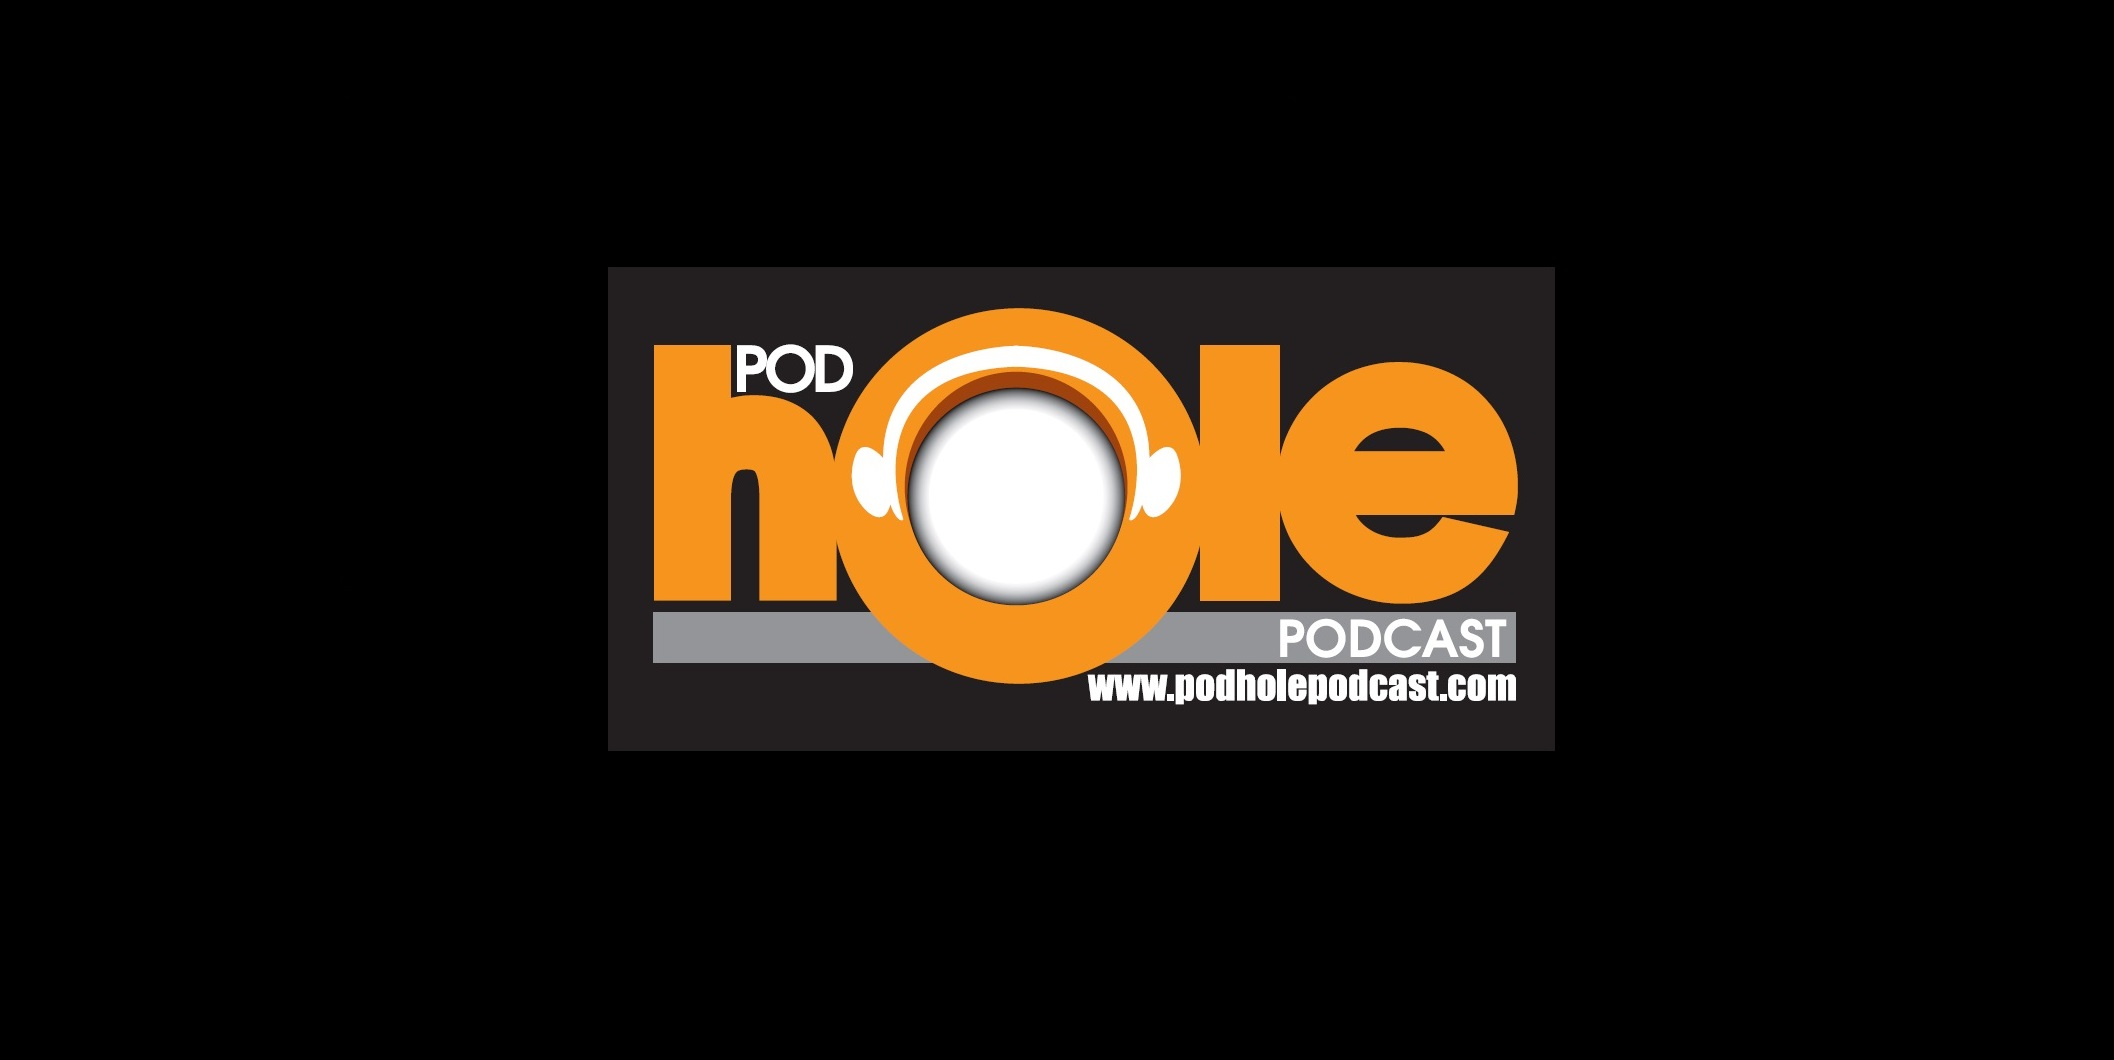 Podhole Podcast